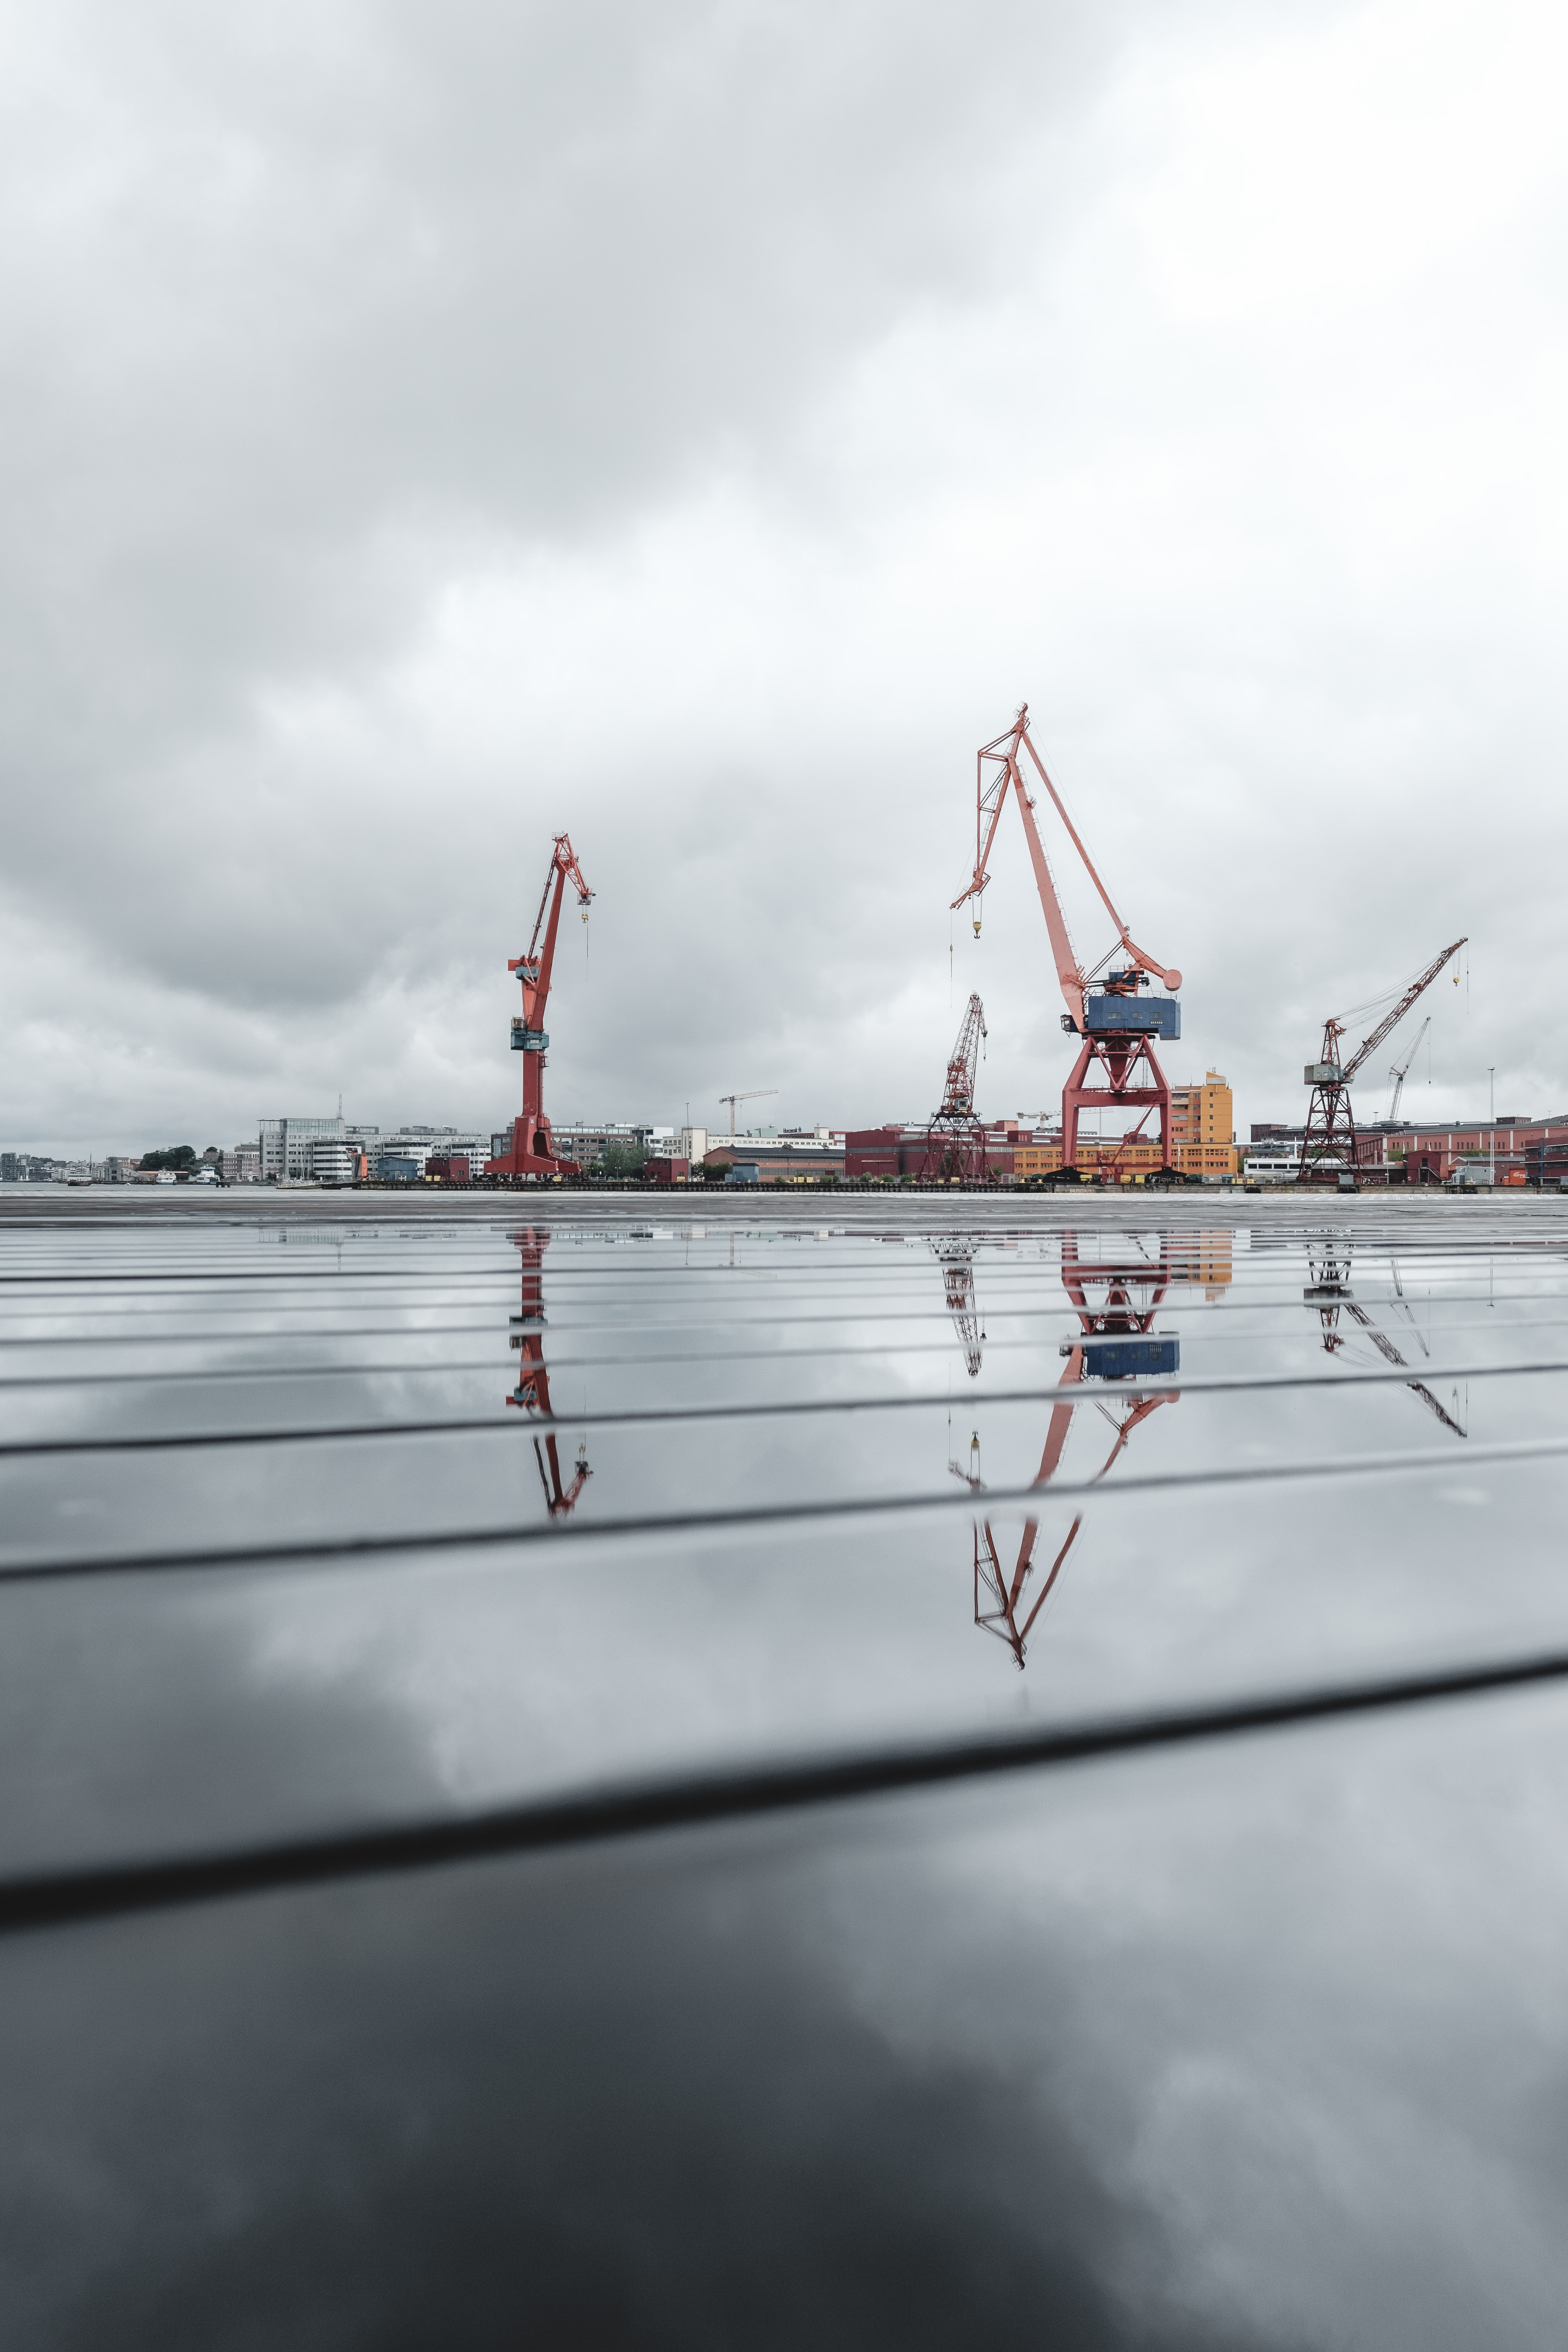 low-angle of cranes at seaport